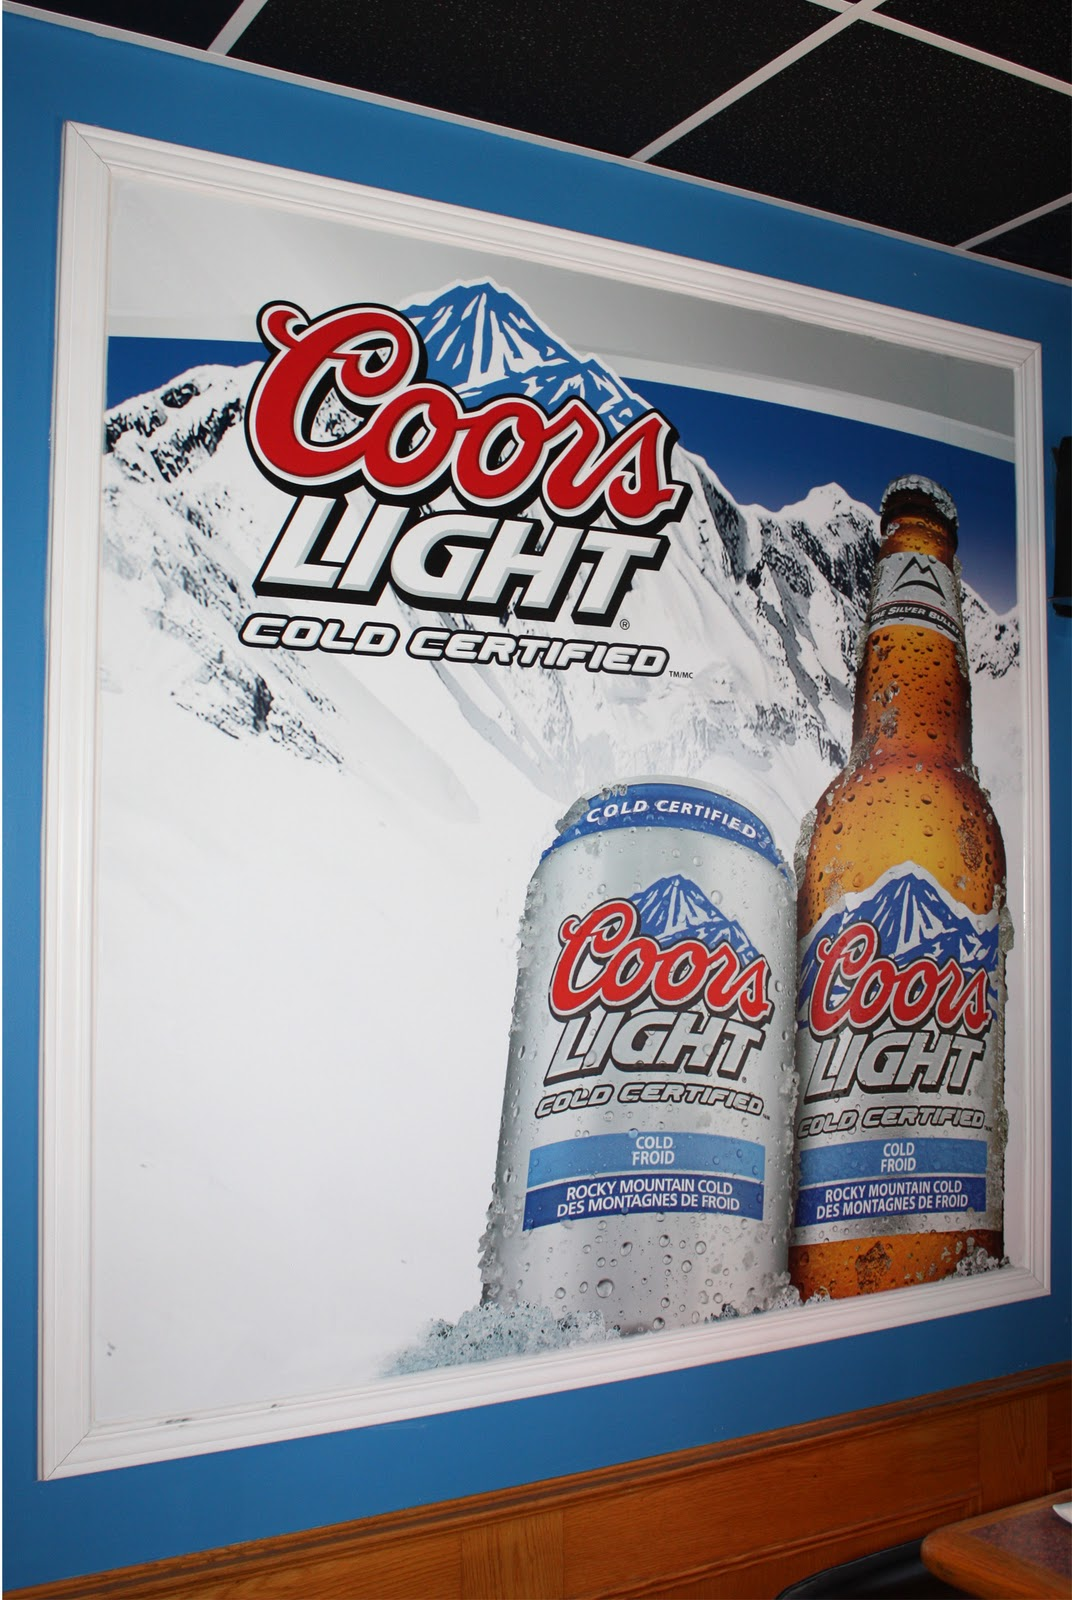 The Port Sports Bar And Grill Got Some New Wall Graphics To Go With Their Look Murals Are A Great Way Promote Product